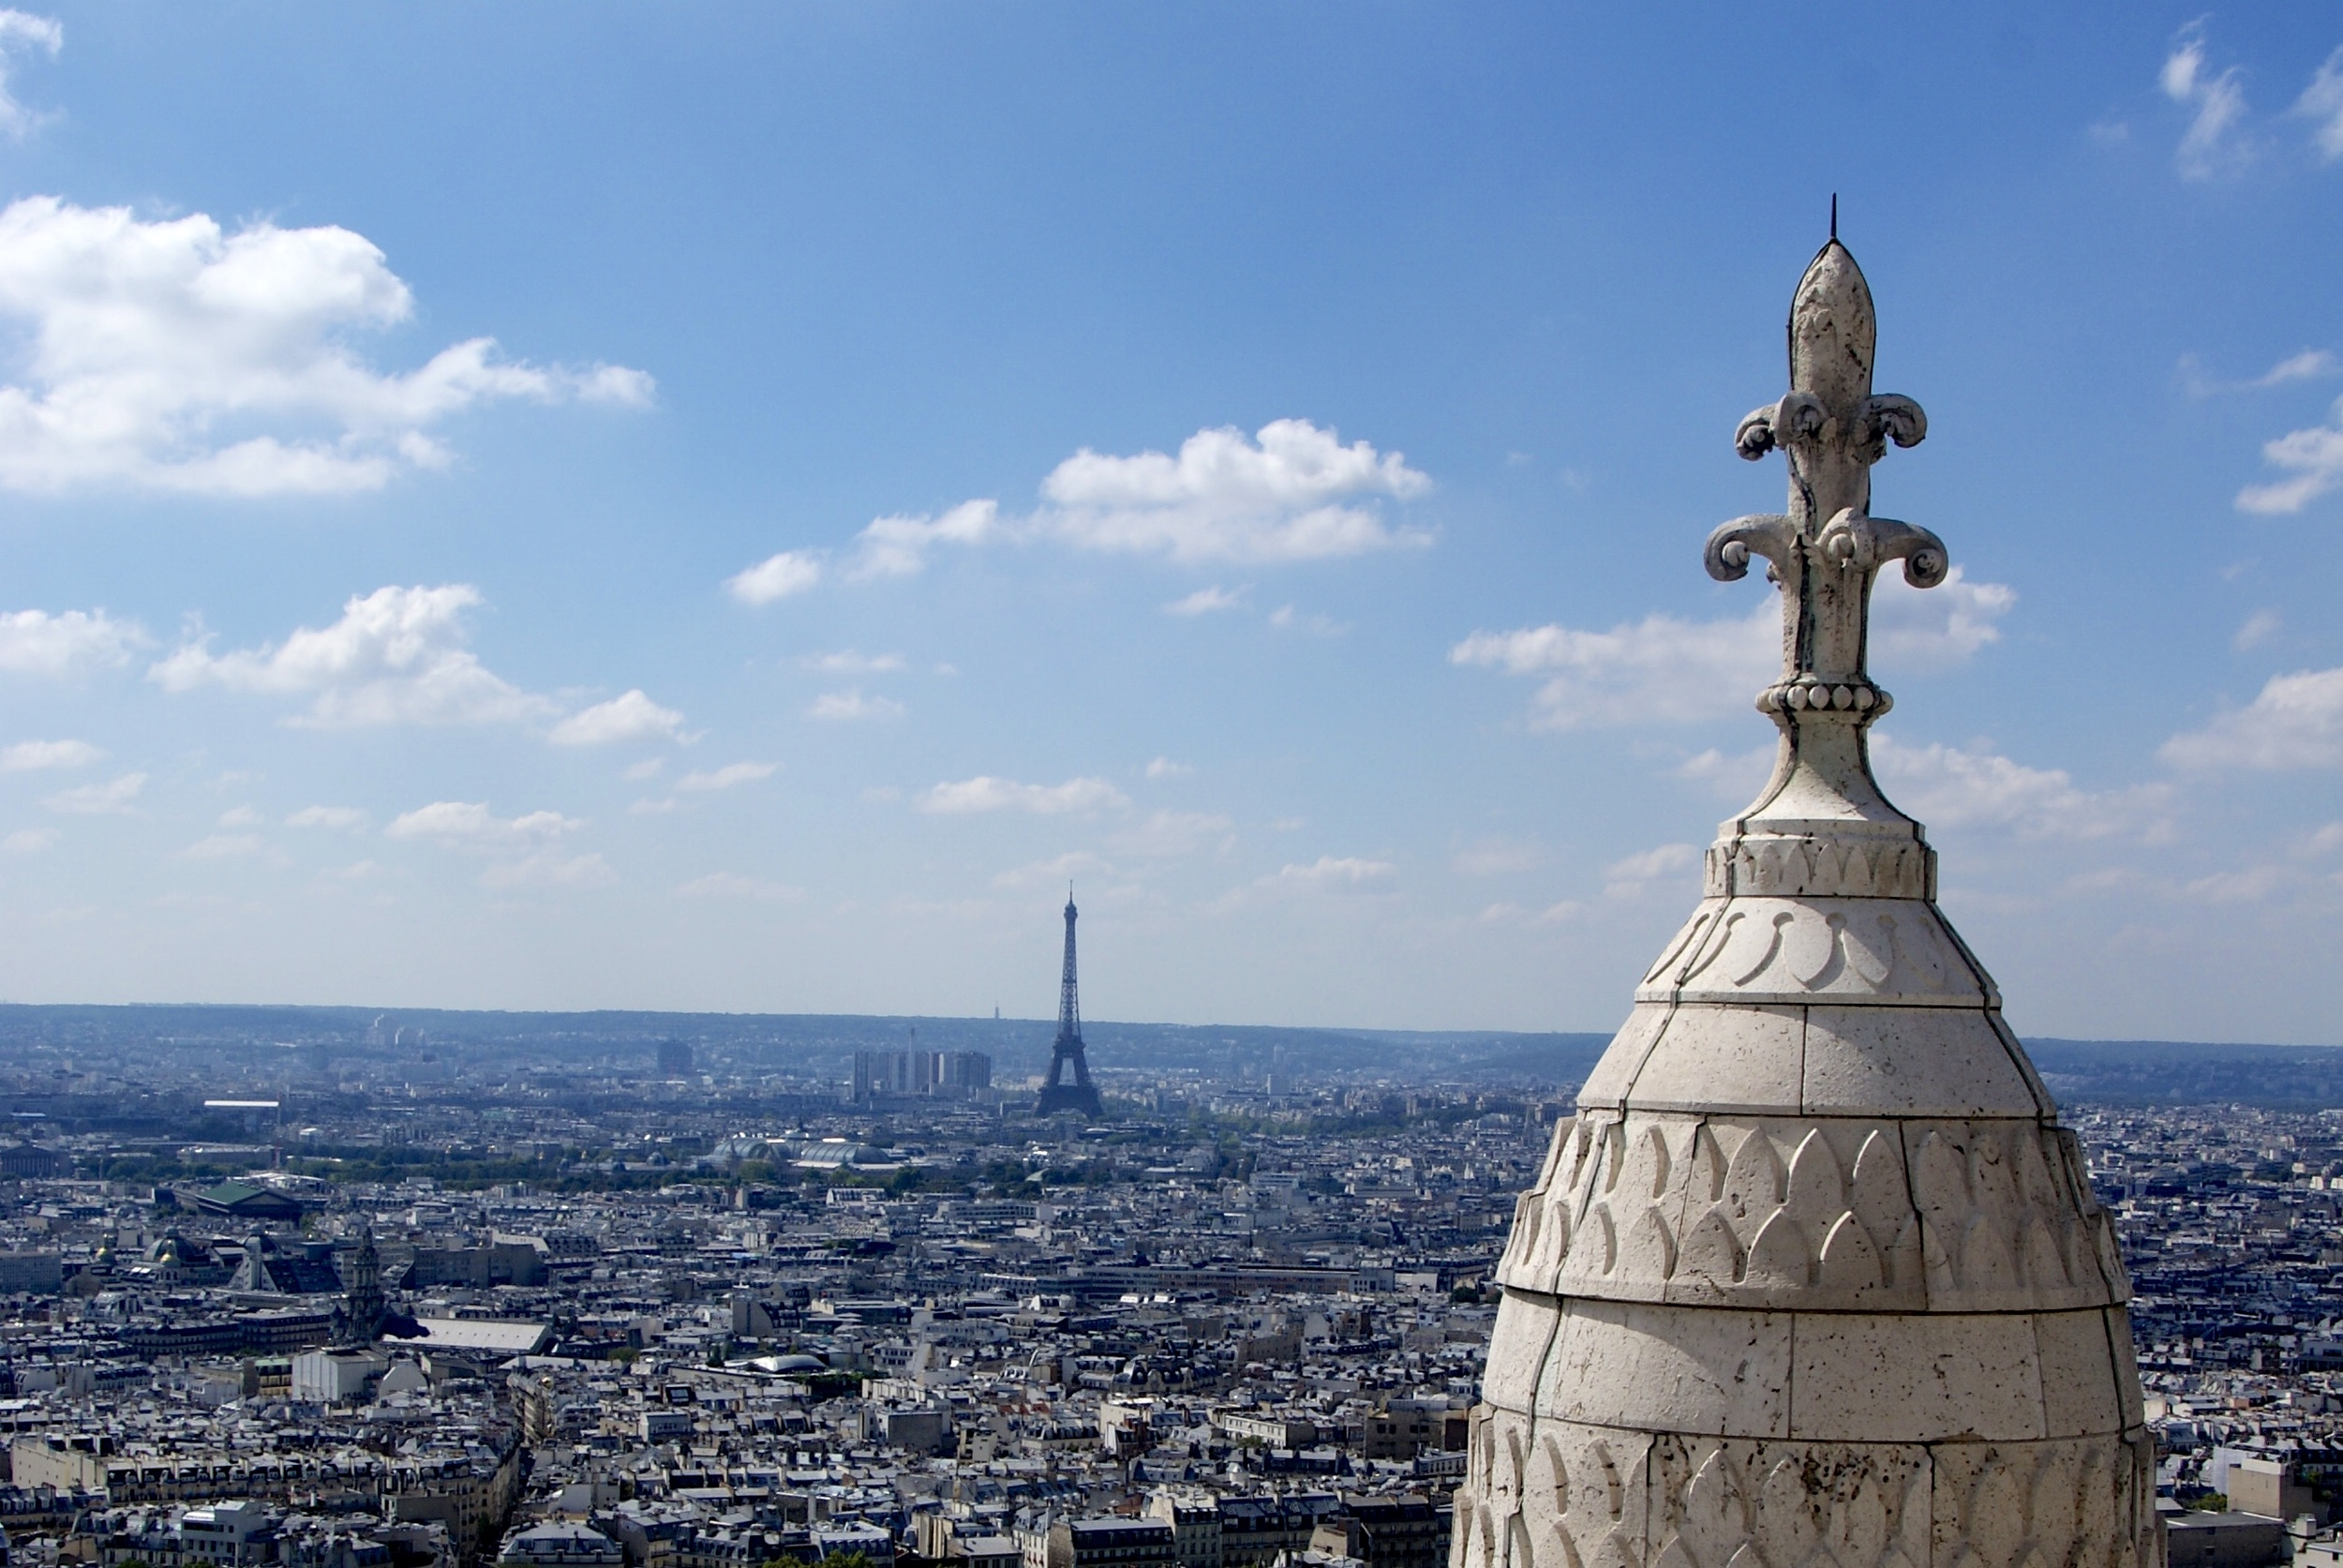 Views from the Dome of Sacré-Coeur